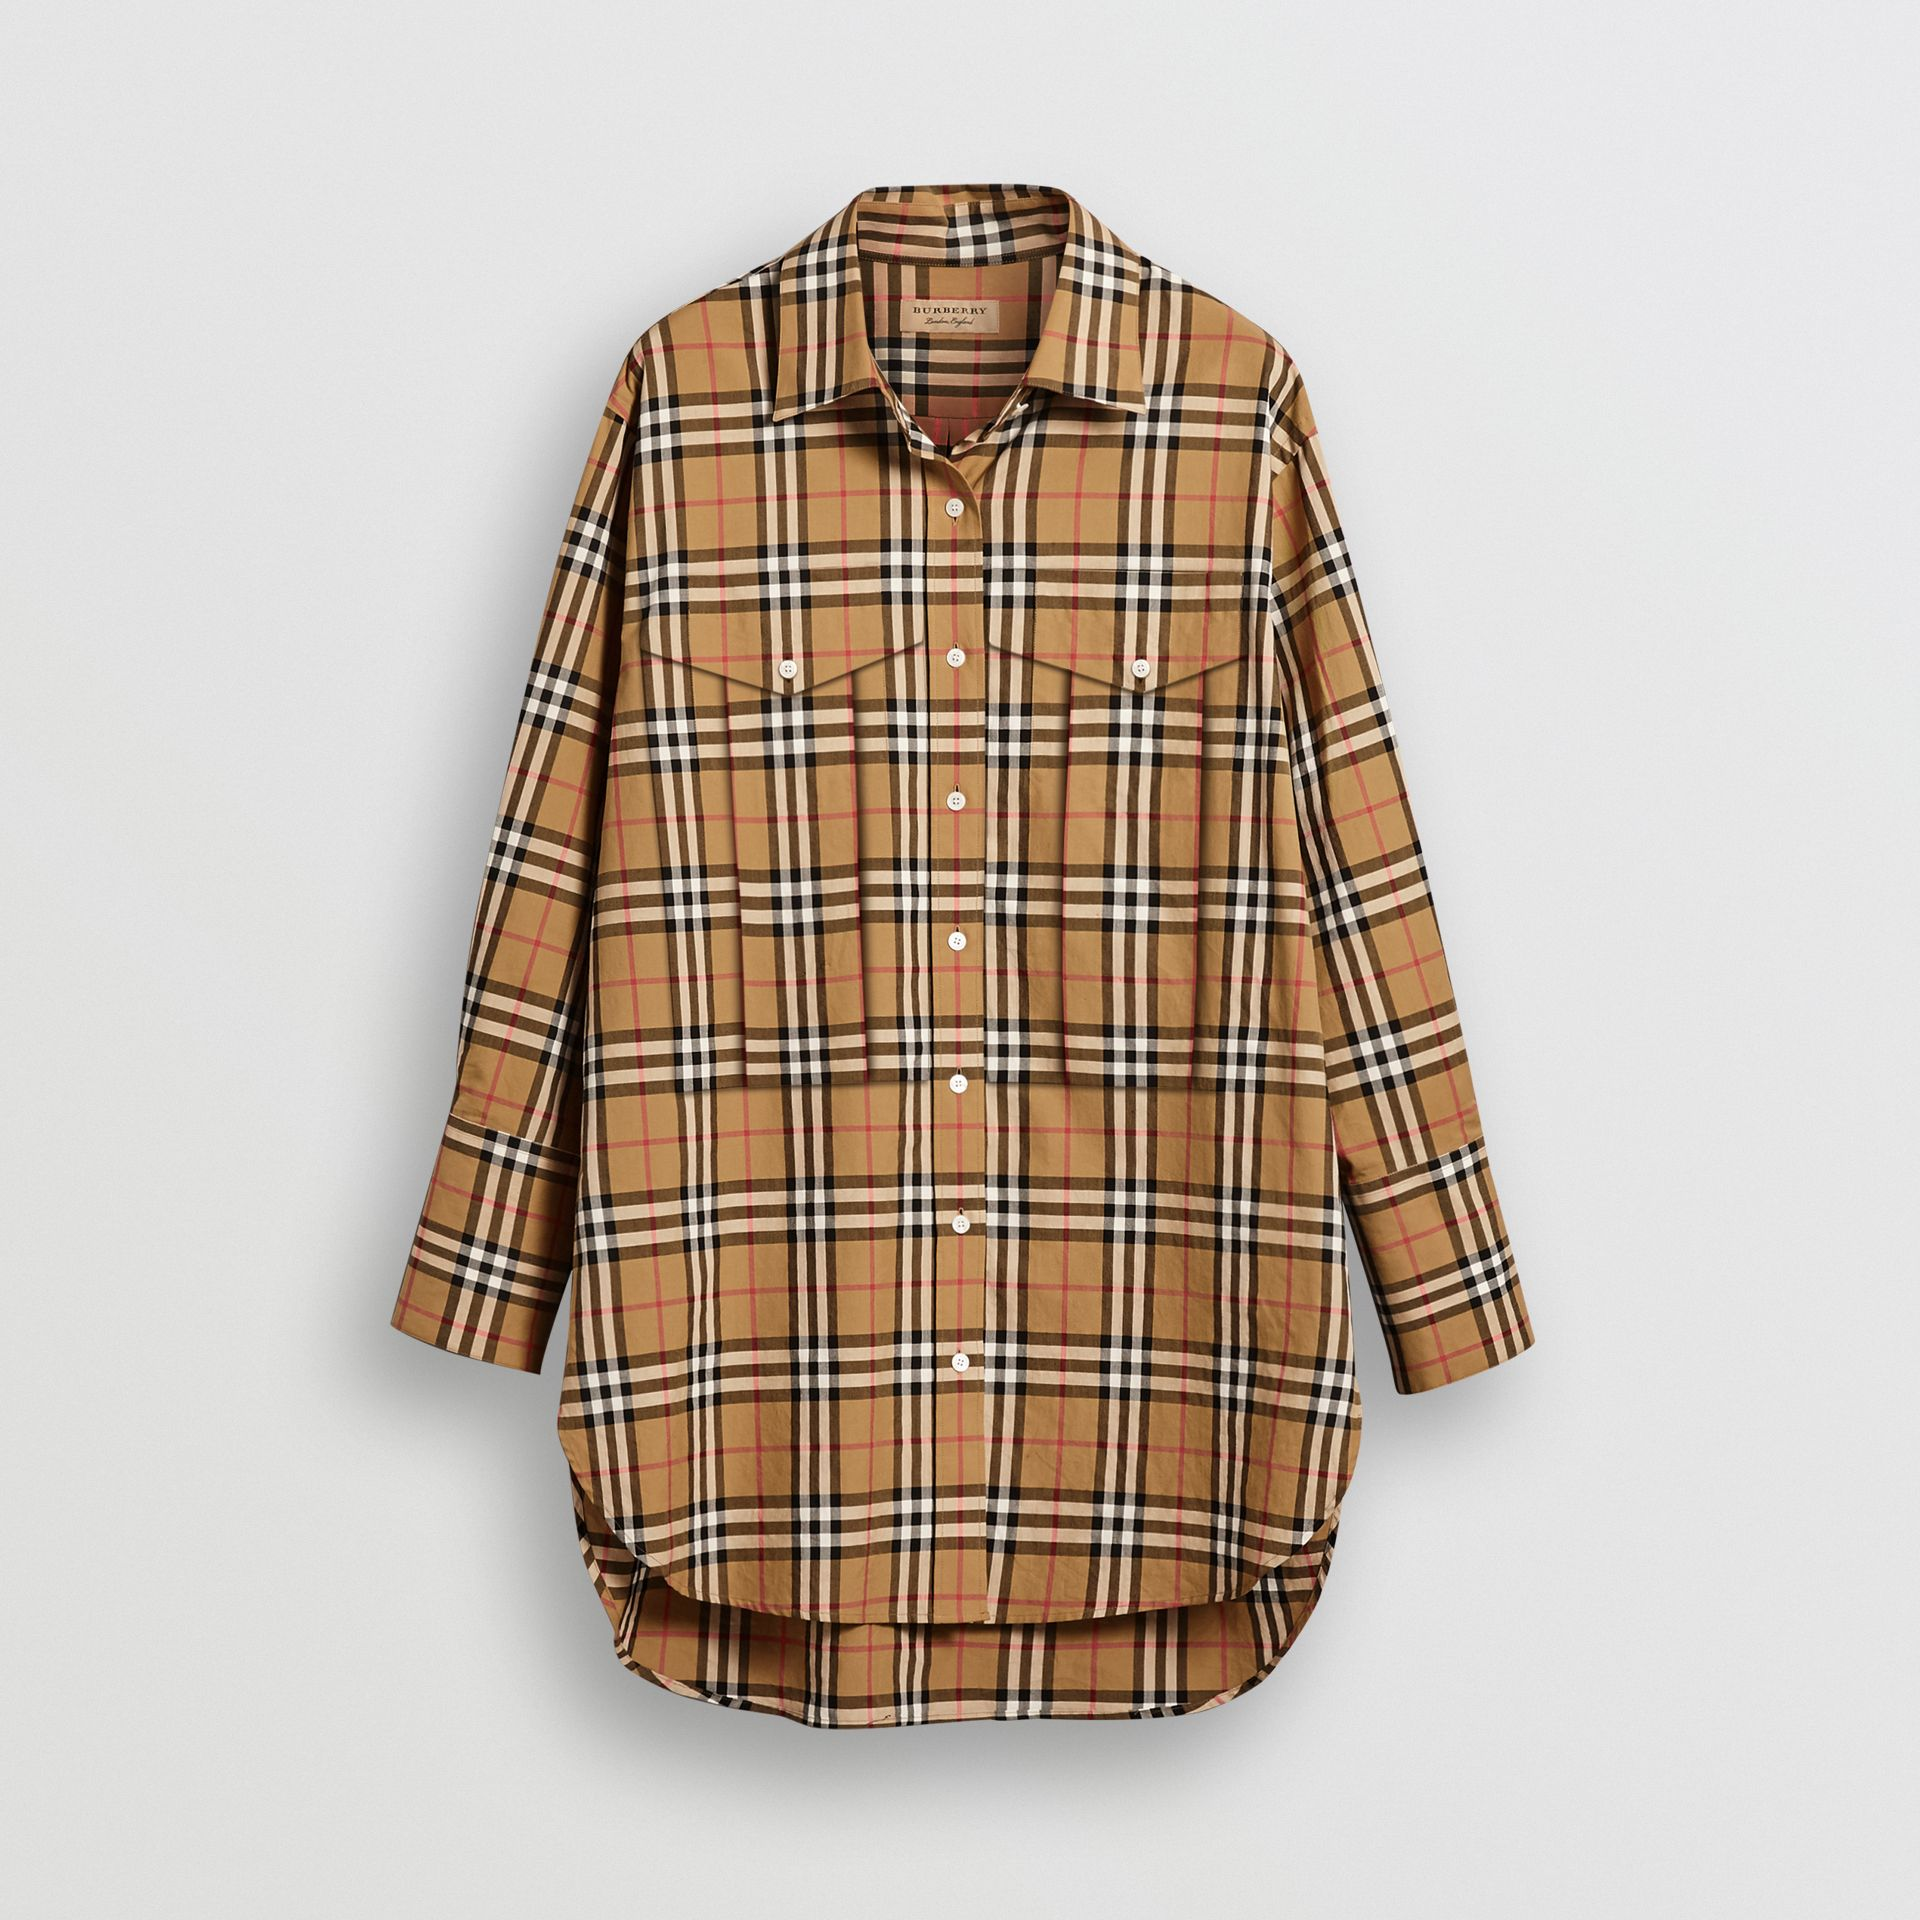 Chemise en coton à motif Vintage check (Jaune Antique) - Femme | Burberry - photo de la galerie 3